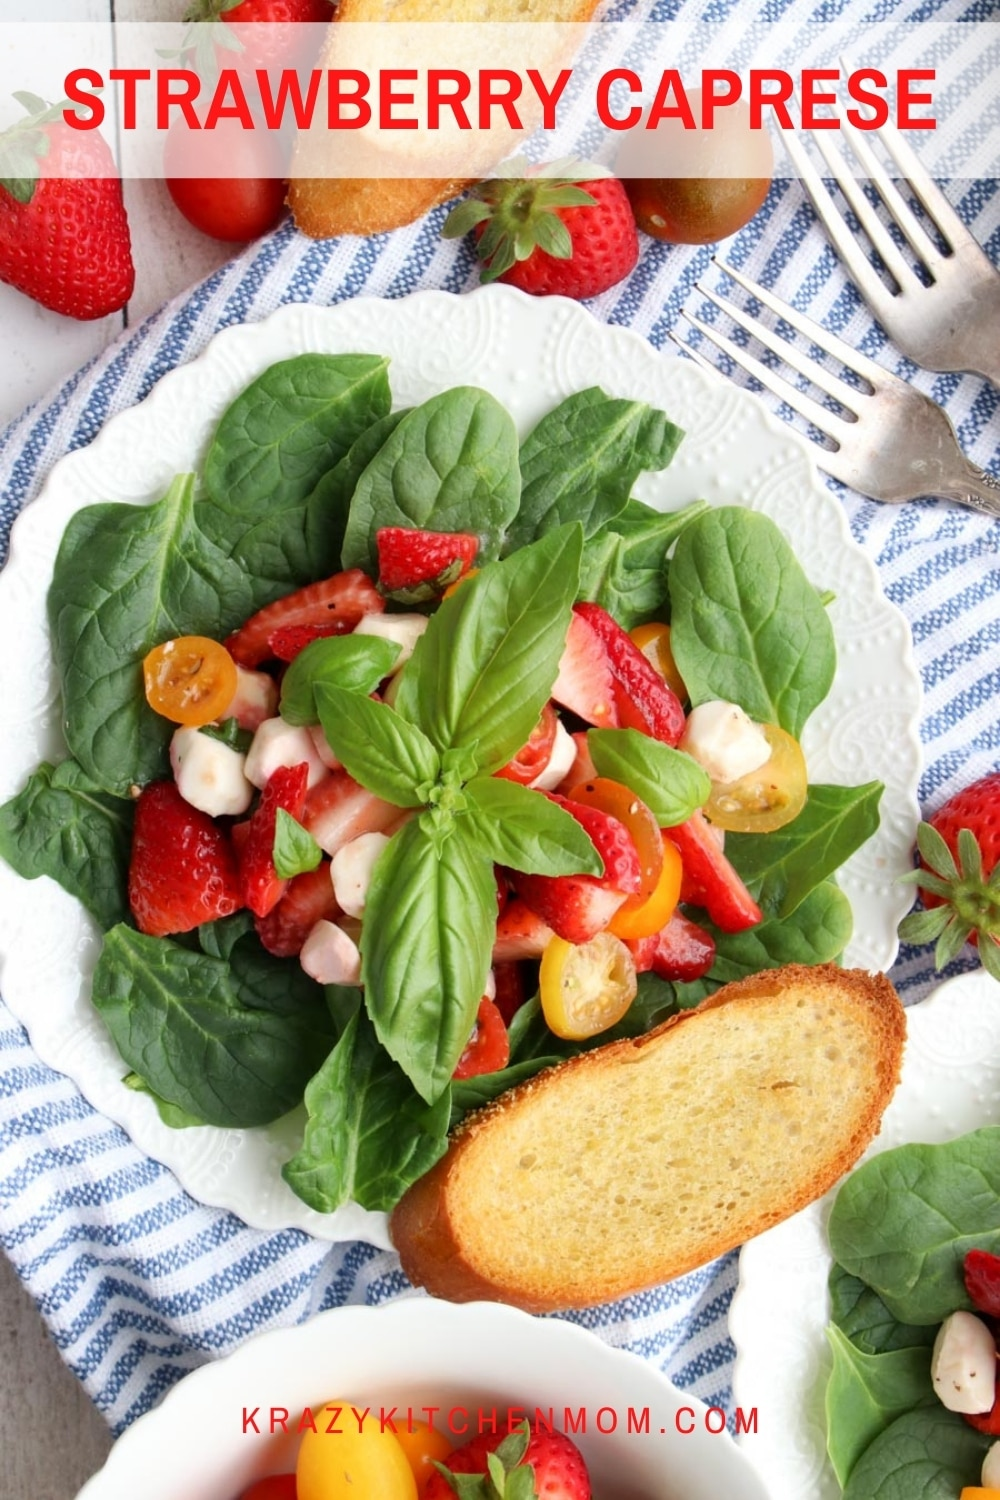 A traditional cypress salad dressed up for spring and summer by adding ripe juicy strawberries. It's perfect for any spring or summer gathering.  via @krazykitchenmom